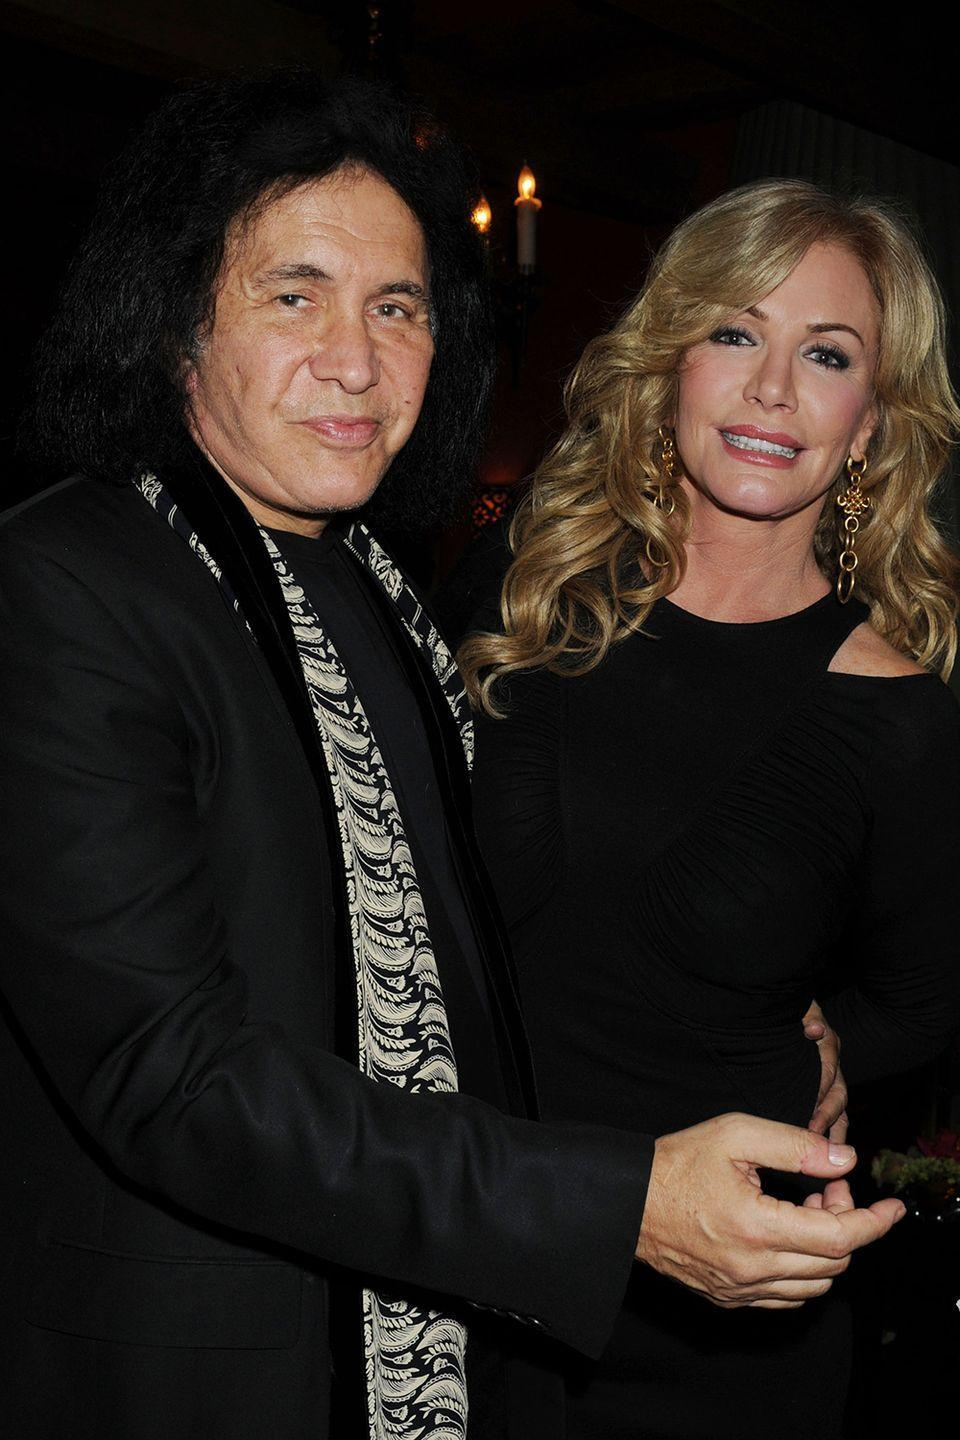 """<p>Interviewer Joy Behar shows a clip of her talking with Alice Cooper about the potential 5,000 women Simmons has been with. After the clip, Behar jokes, """"How's your back, Gene?"""" and he answers with a joke, """"My back is very good, my 'schmeckle,' not so much."""" <a href=""""https://www.youtube.com/watch?v=bBc0am1CXPY"""" rel=""""nofollow noopener"""" target=""""_blank"""" data-ylk=""""slk:Tweed got really pissed"""" class=""""link rapid-noclick-resp"""">Tweed got really pissed</a> at his comment, hit Simmon's arm, and walked out of the interview.</p>"""